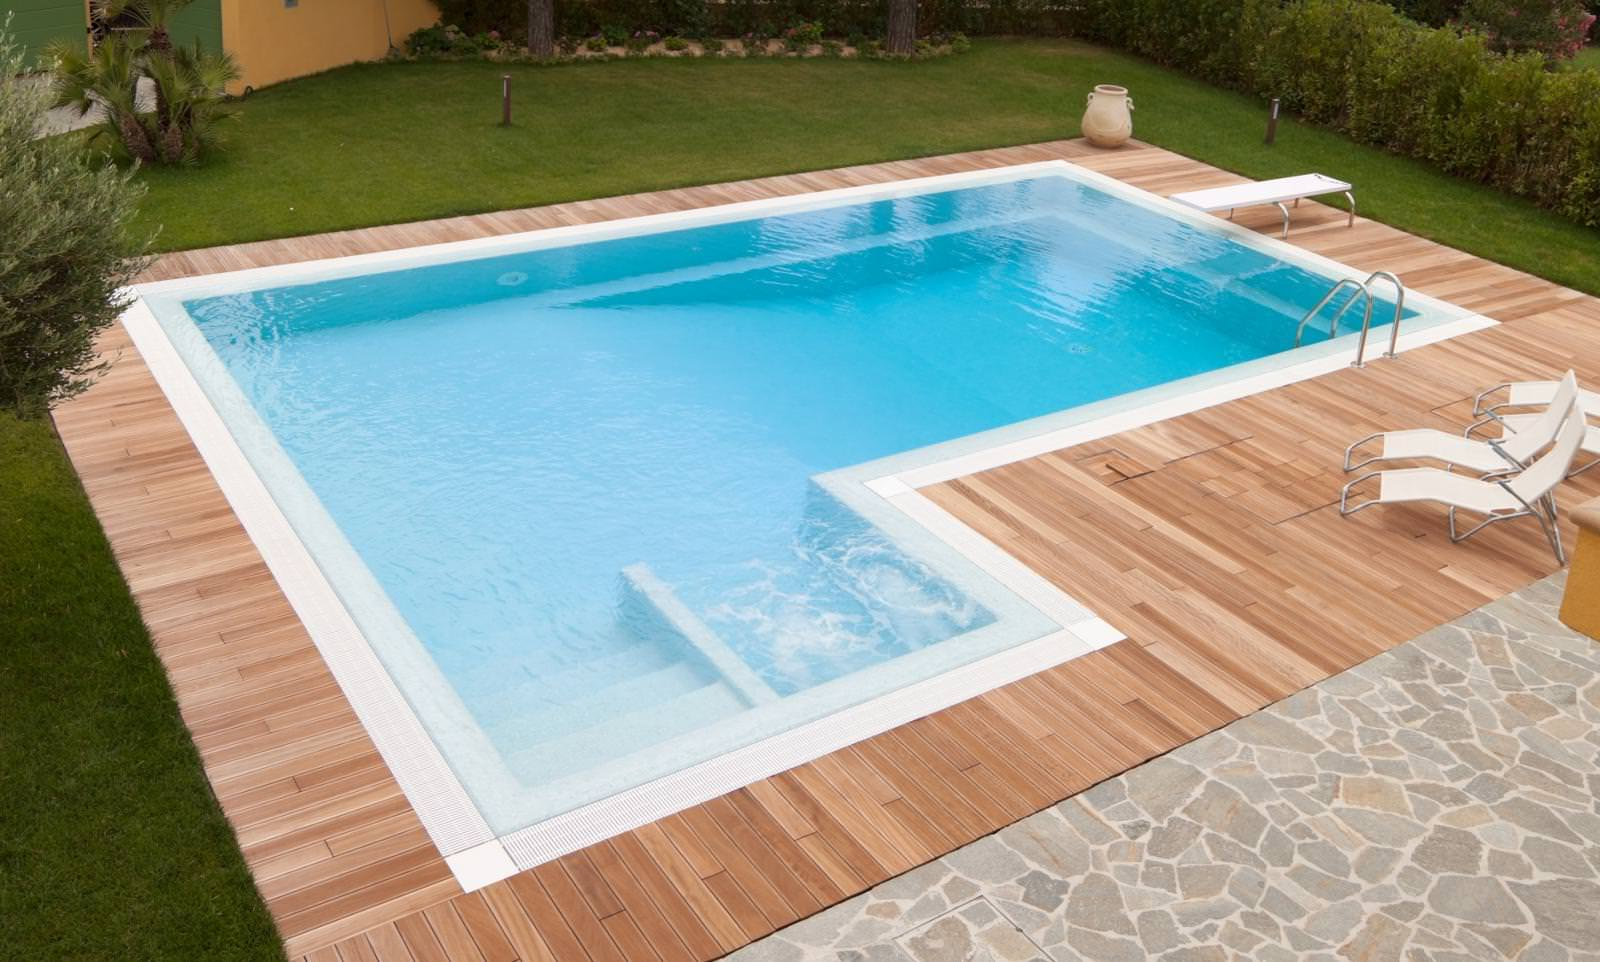 Best swimming pool designs outdoor designs design for Best pool designs 2016